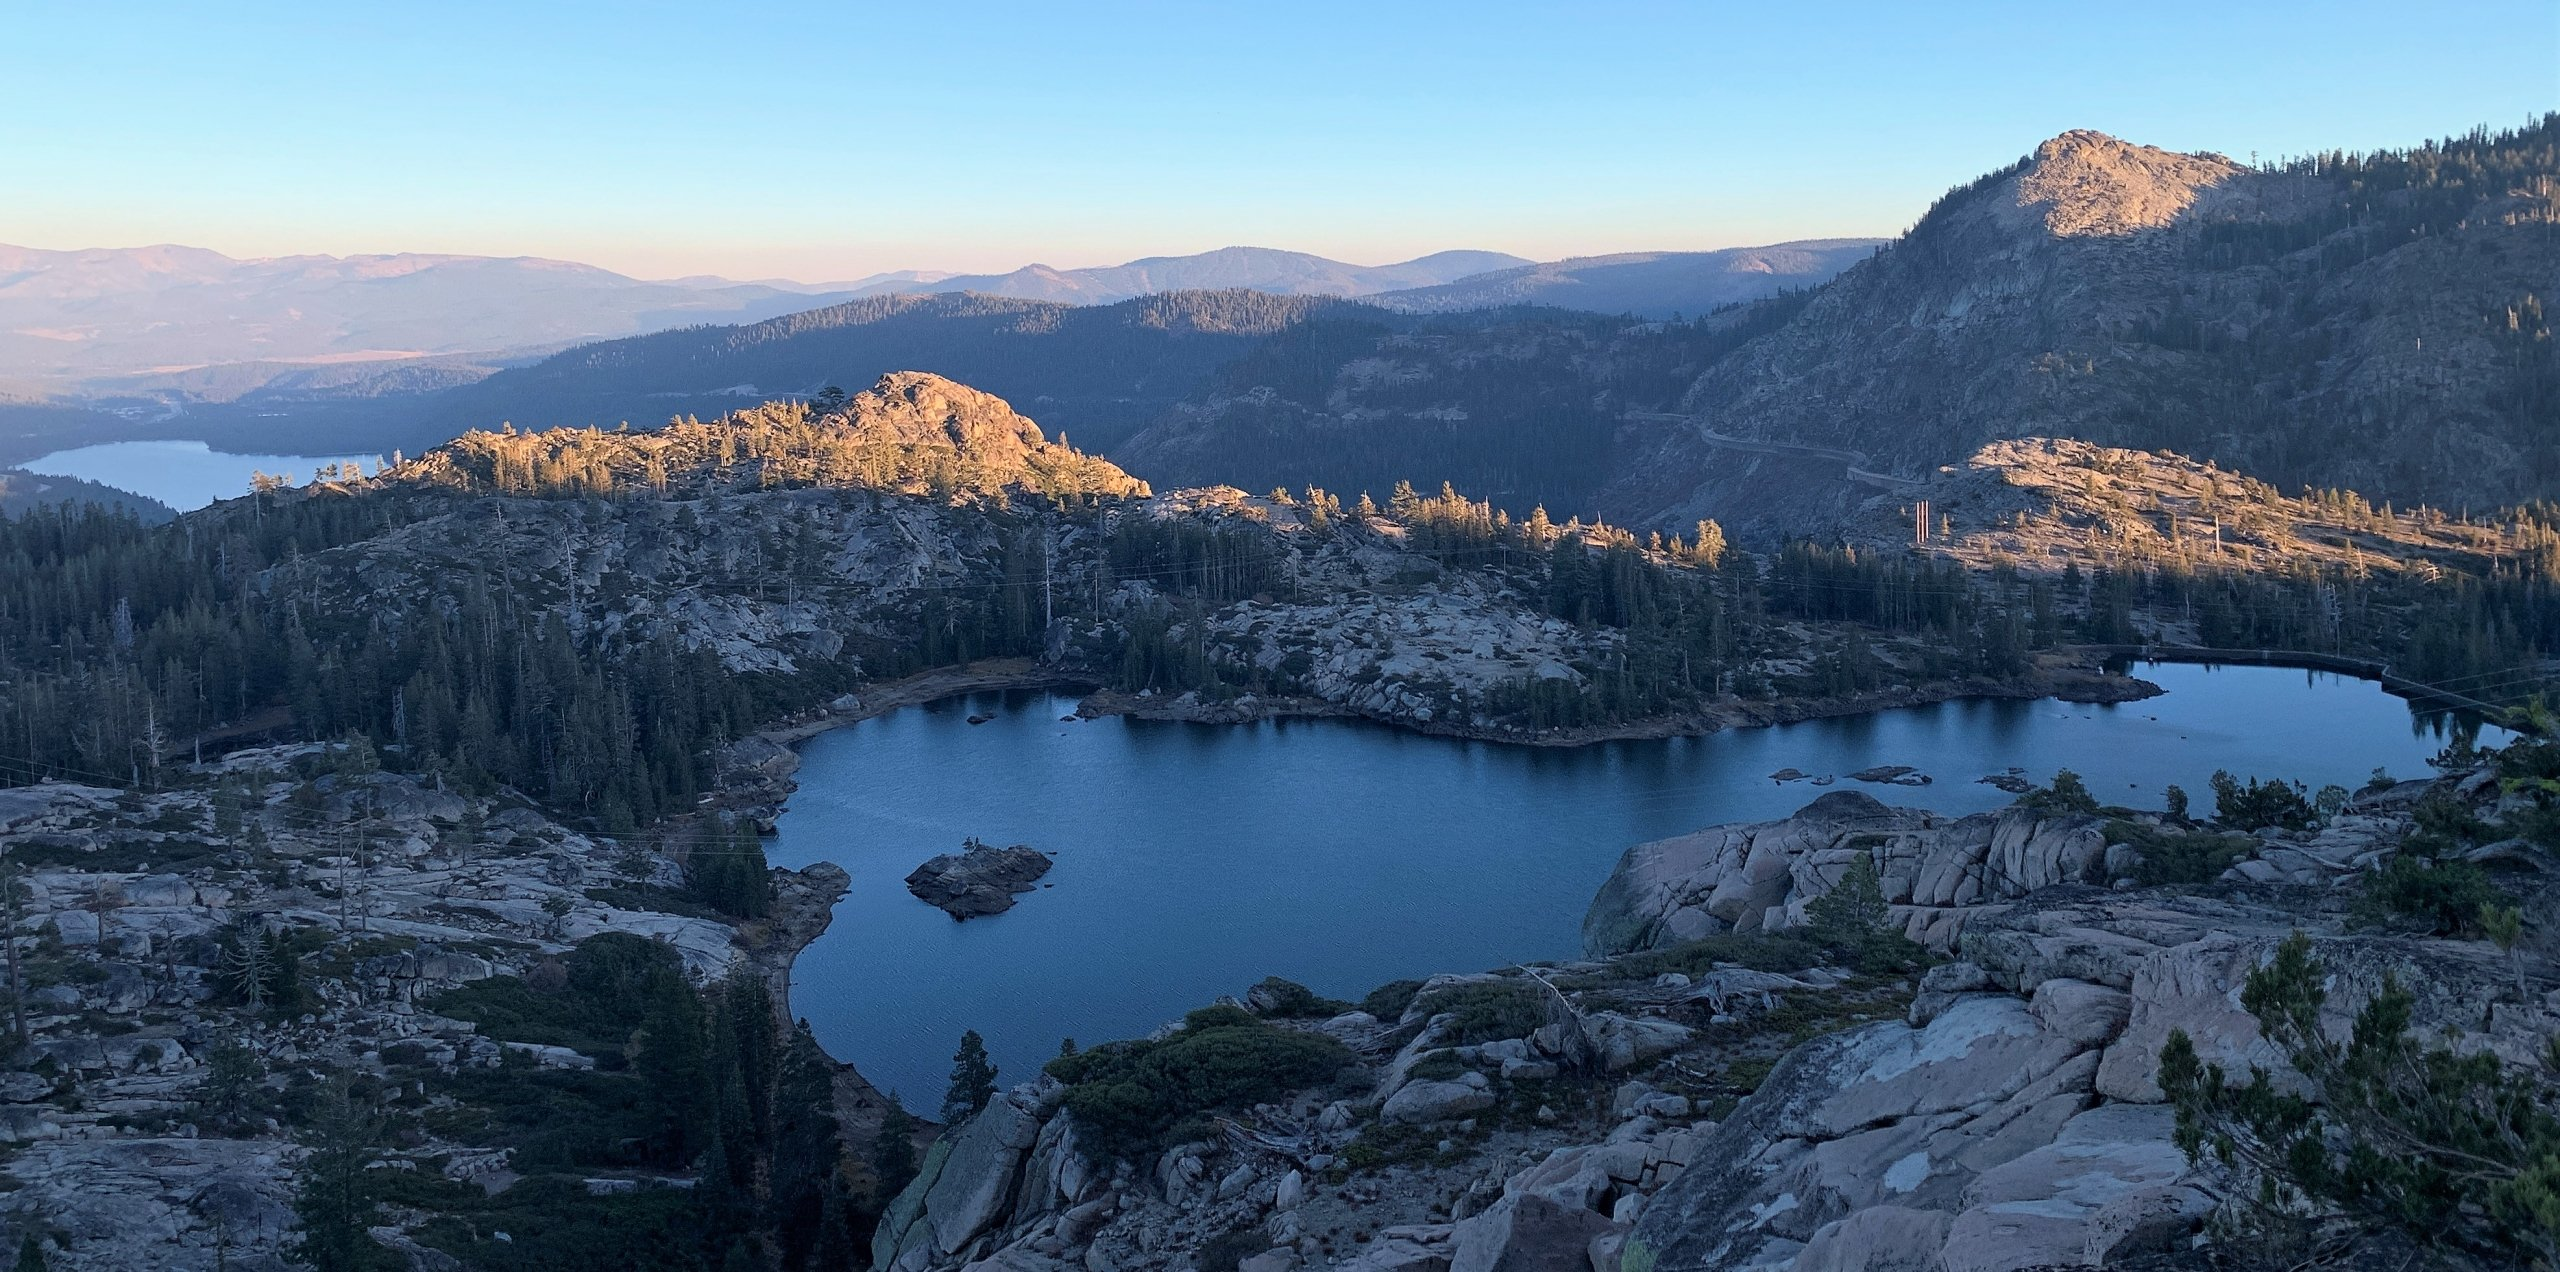 Donner Summit, Mount Rose Wilderness, Martis Valley